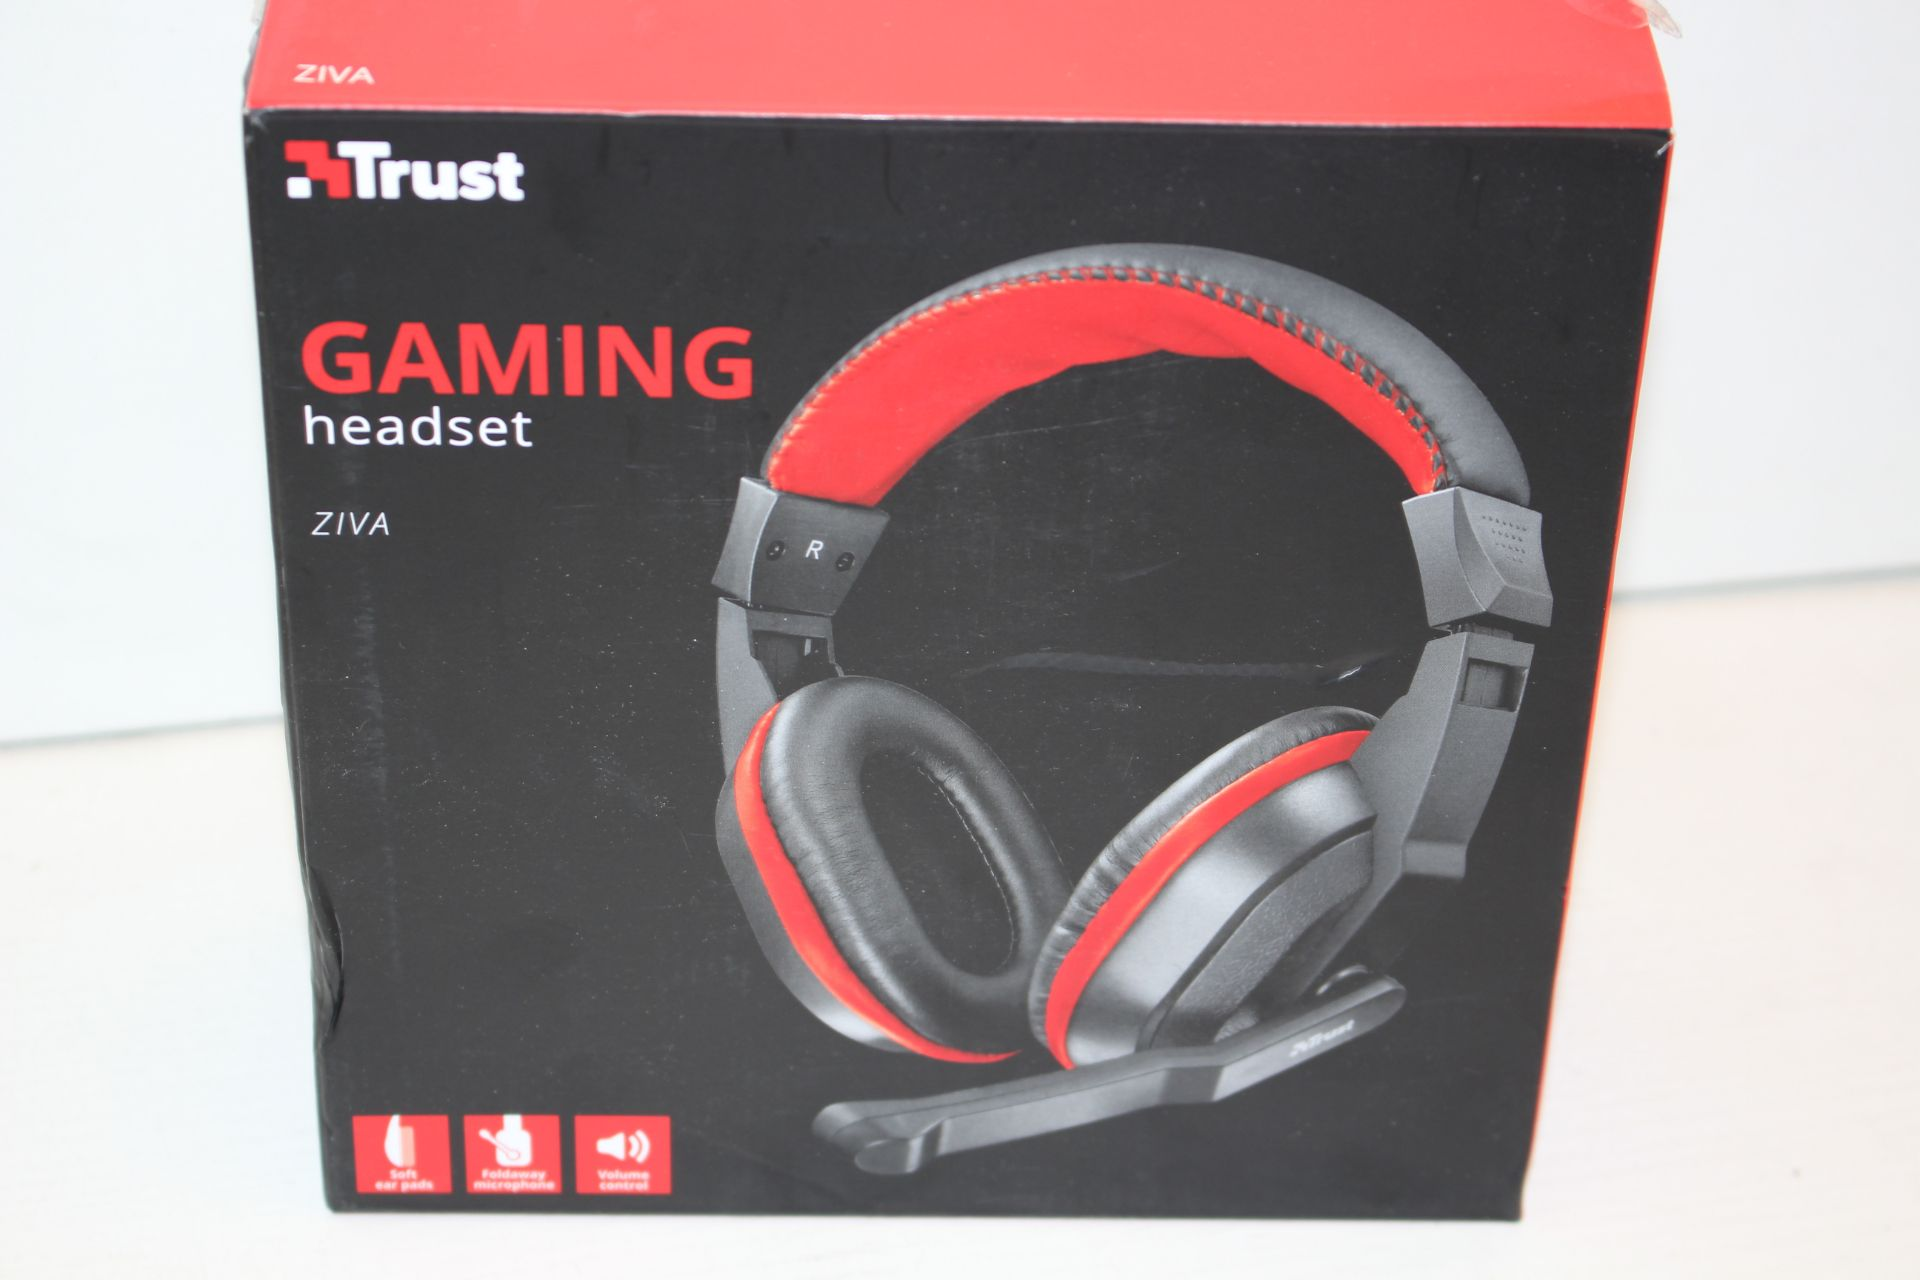 BOXED TRUST GAMING HEADSET ZIVA RRP £18.99Condition ReportAppraisal Available on Request- All